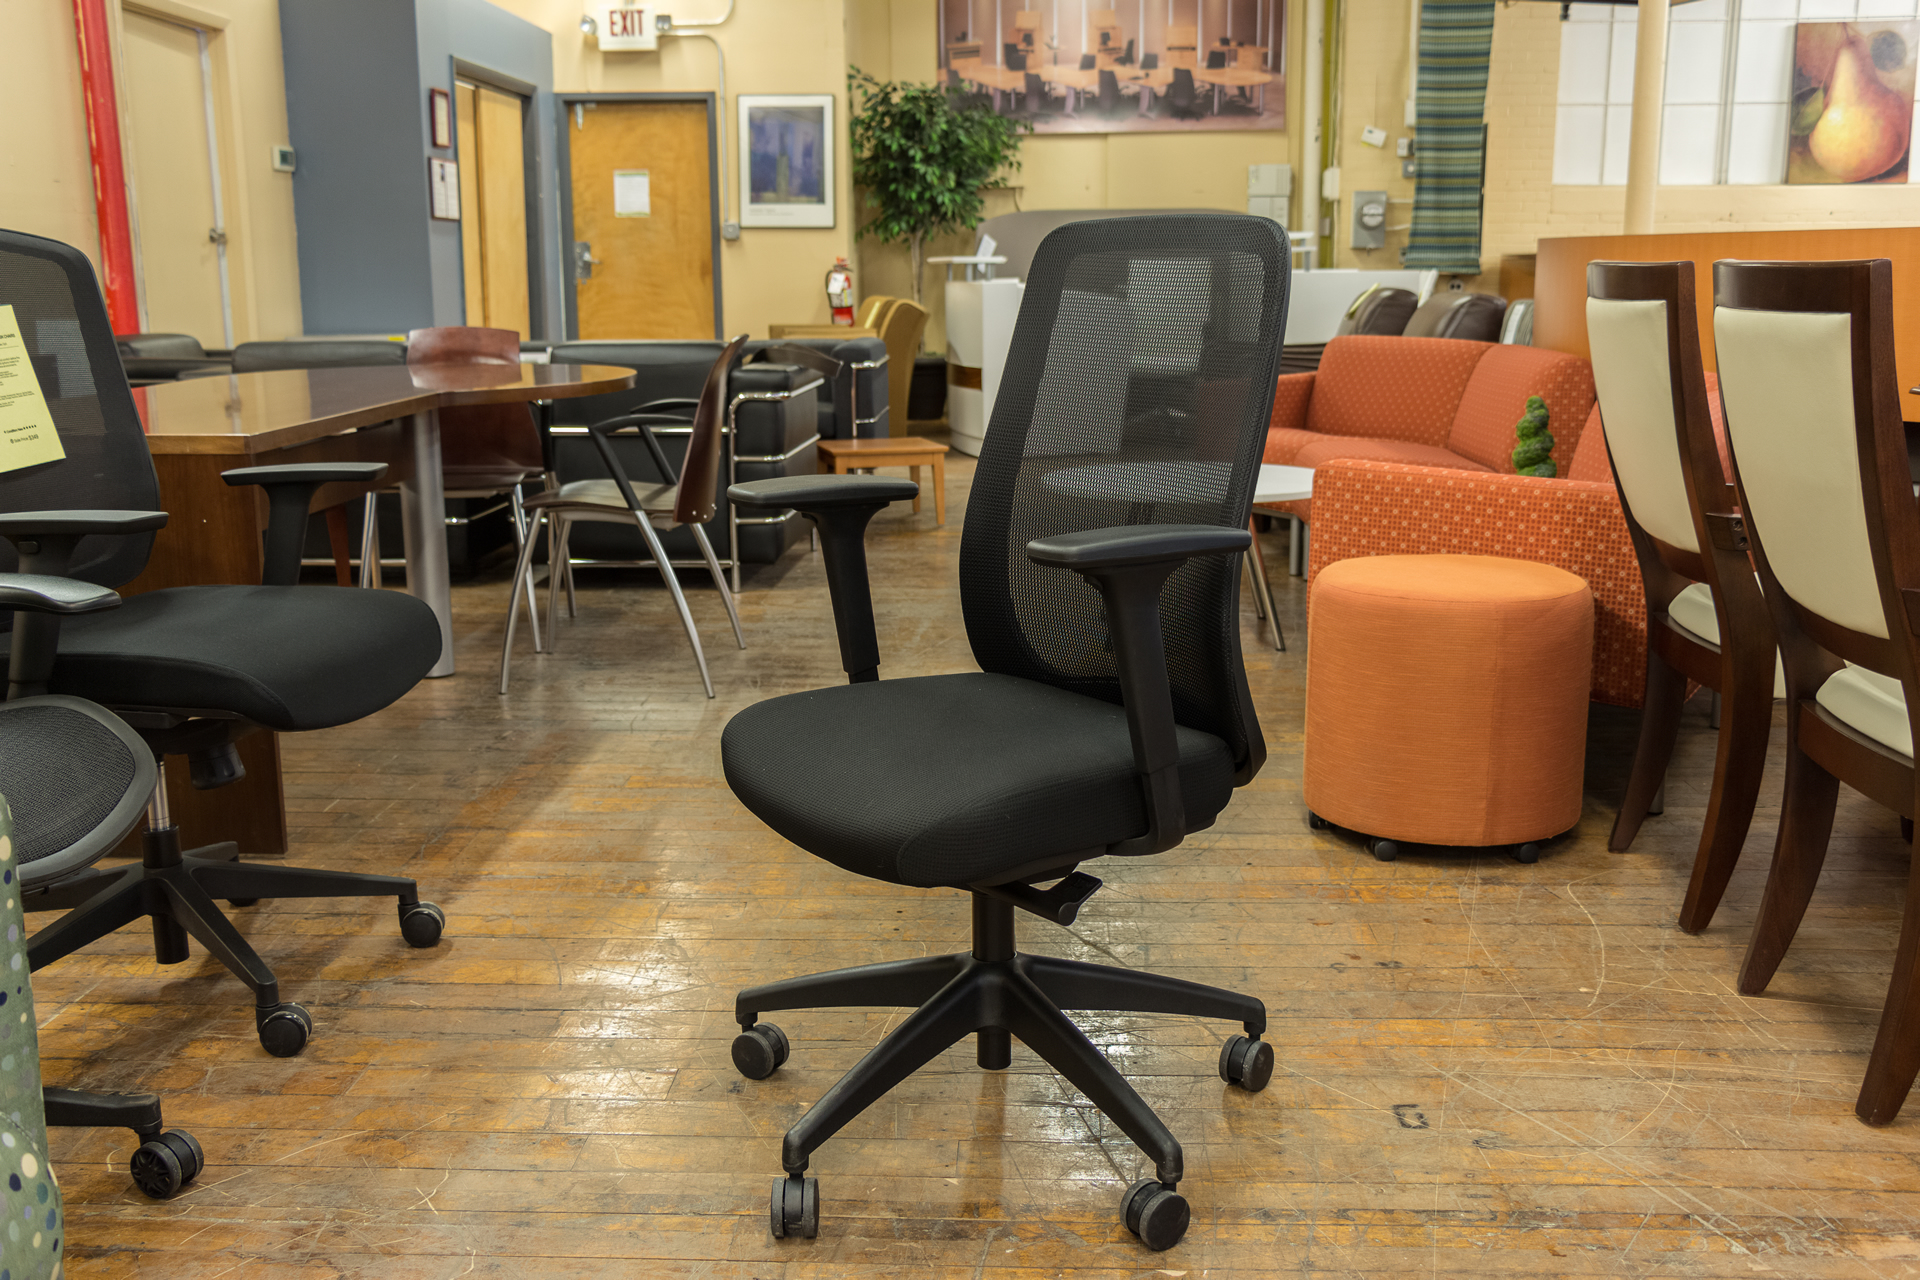 peartreeofficefurniture_peartreeofficefurniture_peartreeofficefurniture_ais-bolton-mesh-back-task-chairs-1.jpg